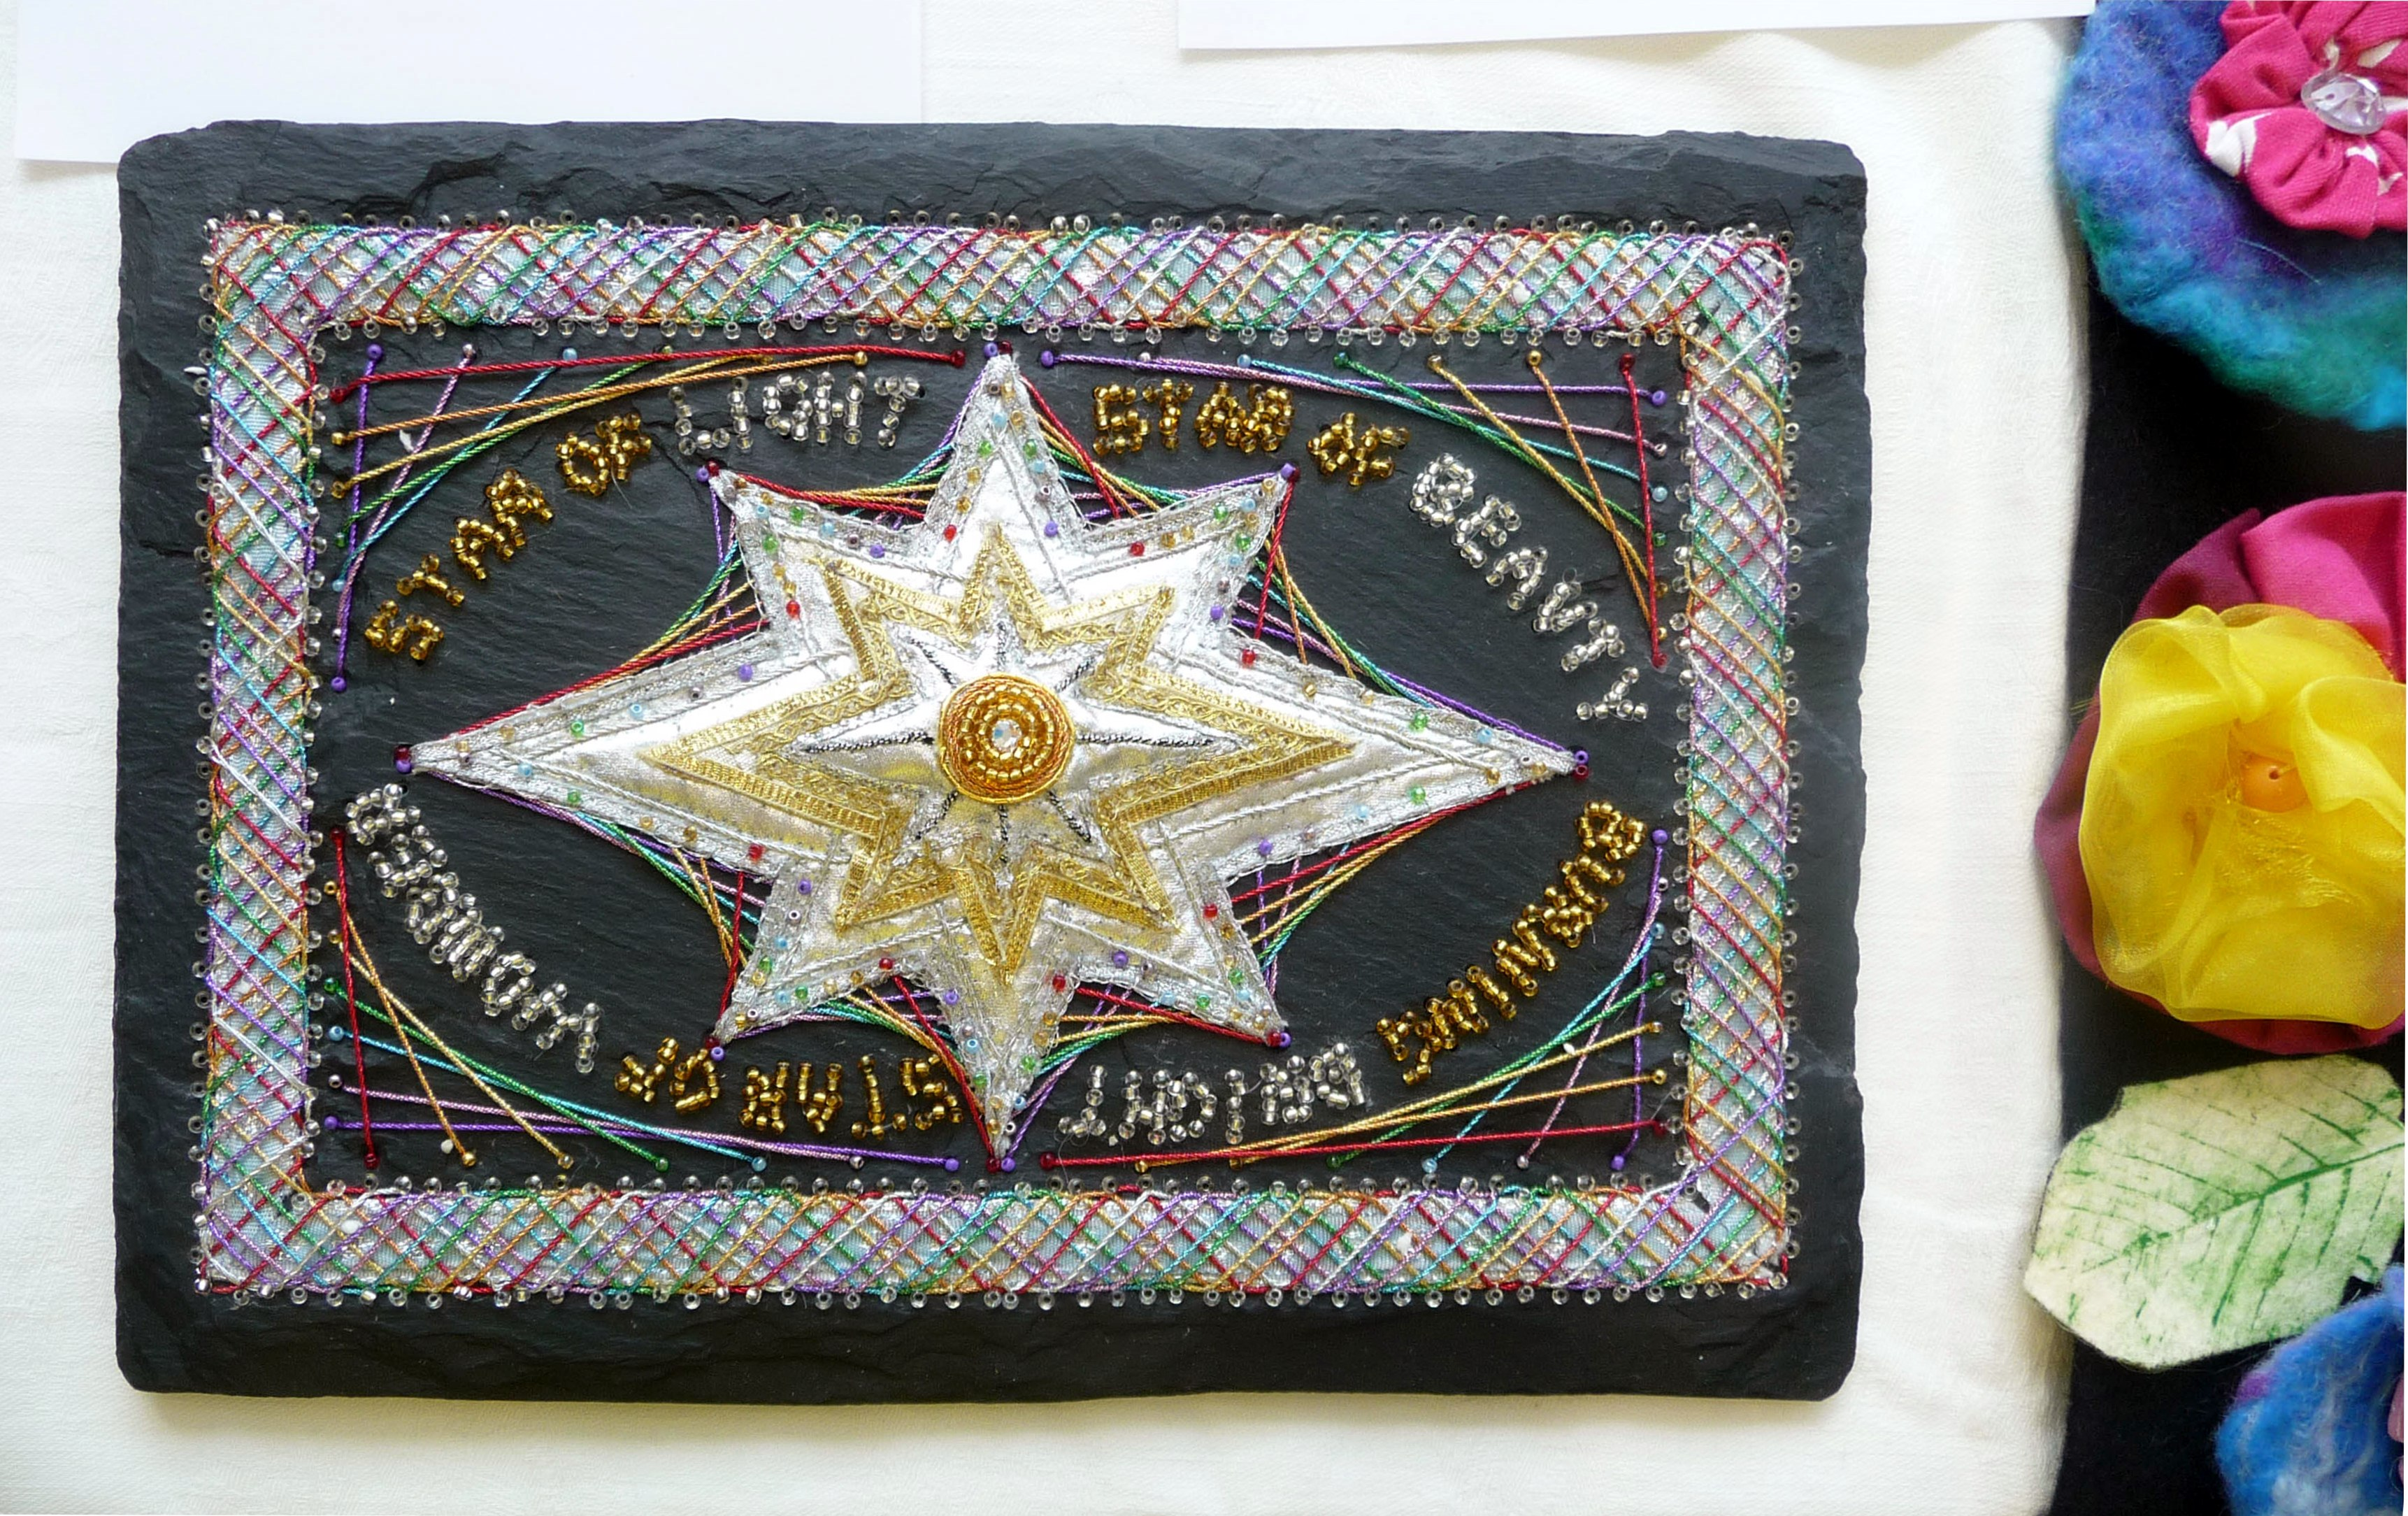 STAR OF LIGHT by Sarah Ruaux, Bolton YE, embroidery on slate